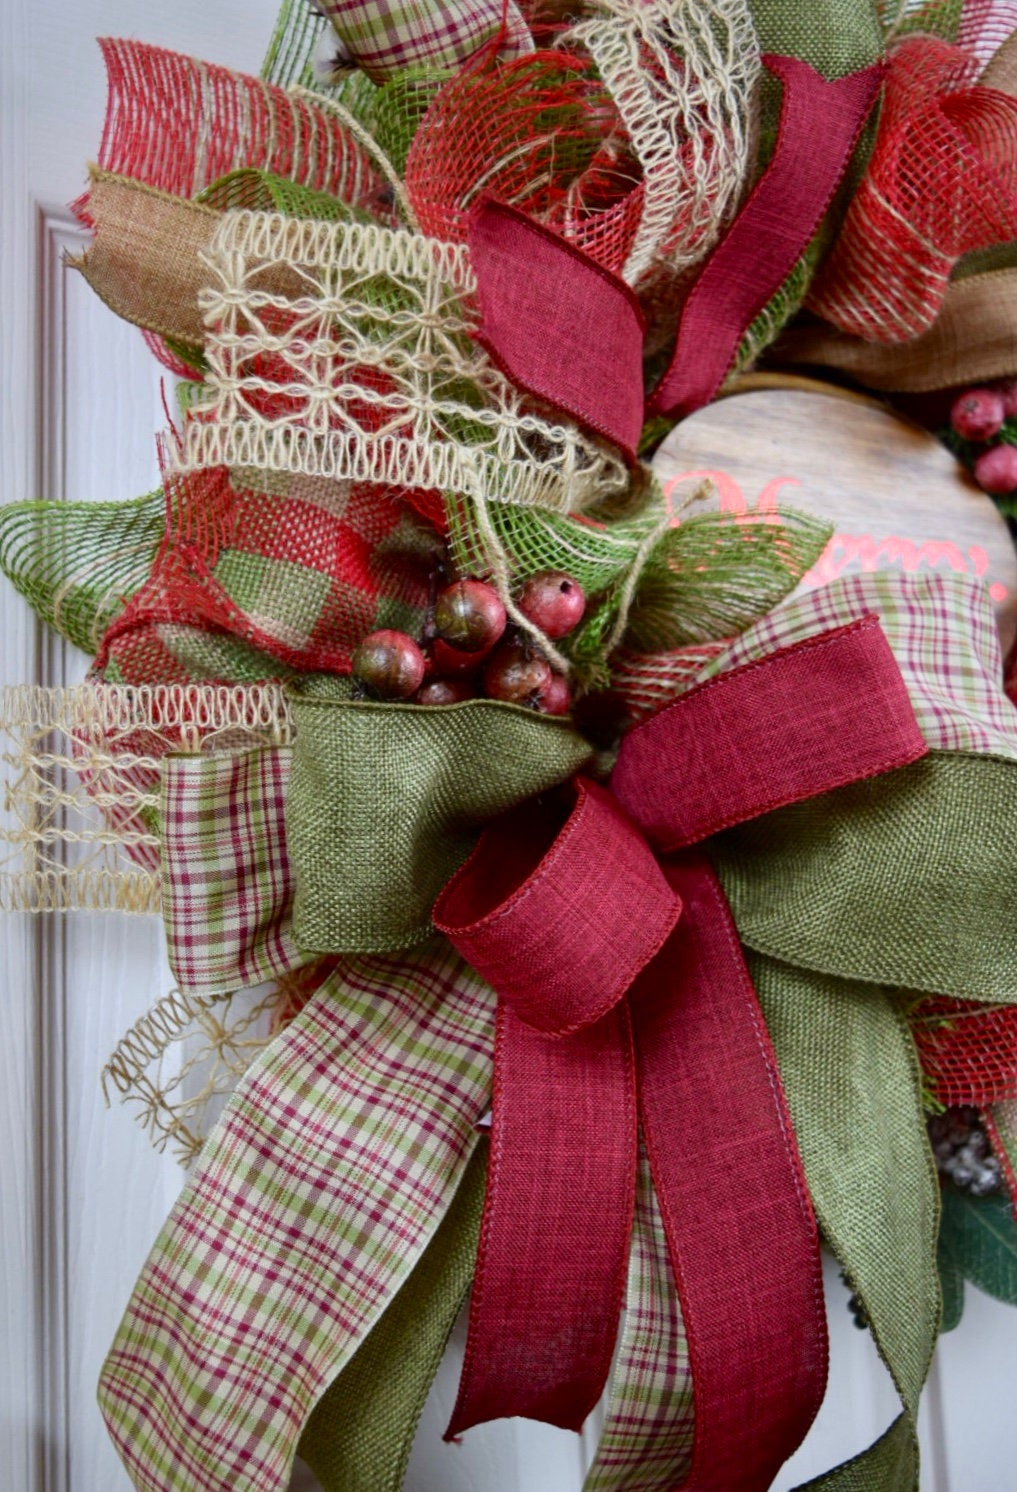 5 Christmas Discounts High Quality Modern Wooden Door: Merry Burlap Mesh Green Red Burgundy Wreath With Berries